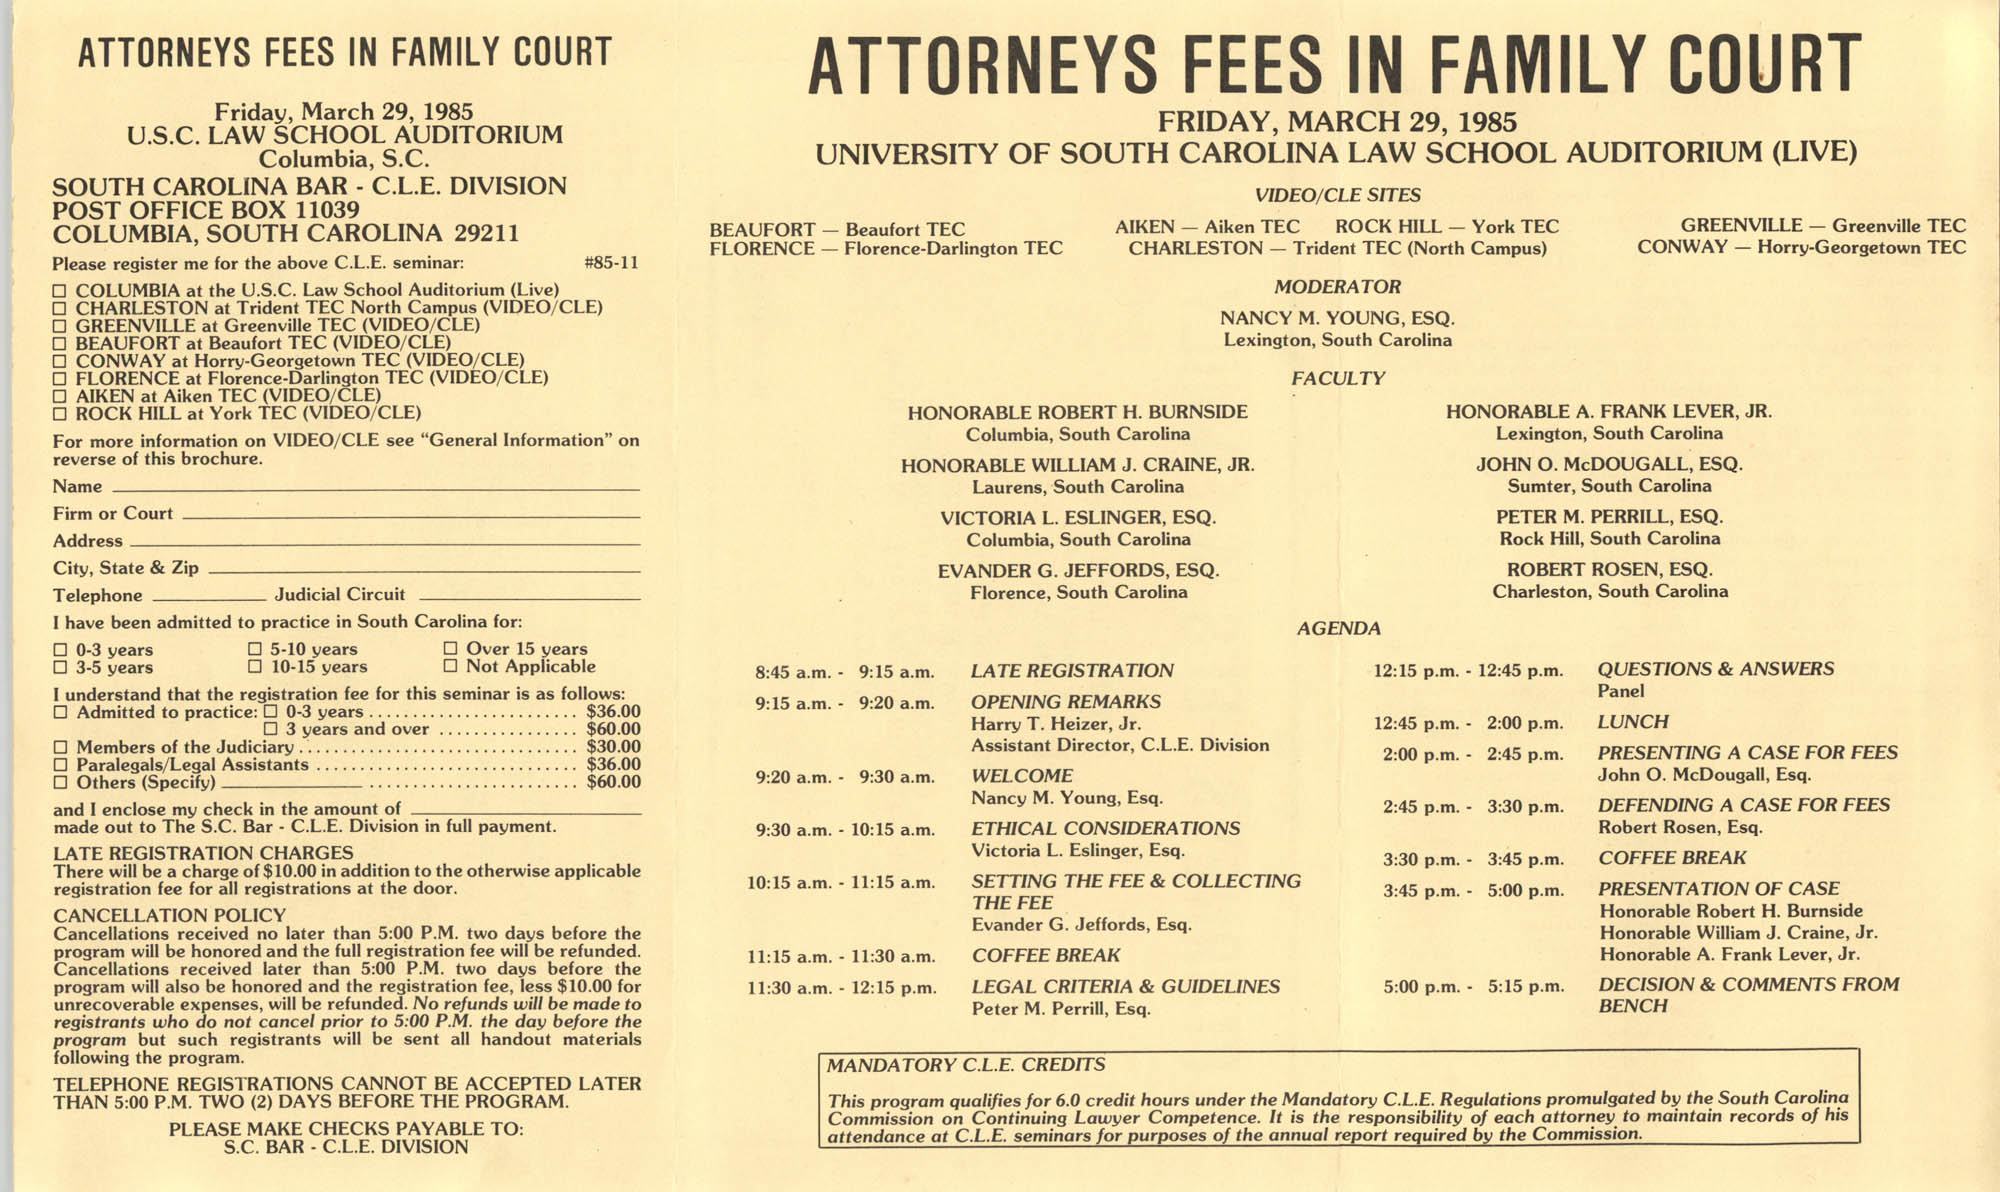 Attorney Fees in Family Court, Video/CLE Seminar Pamphlet, March 29, 1985